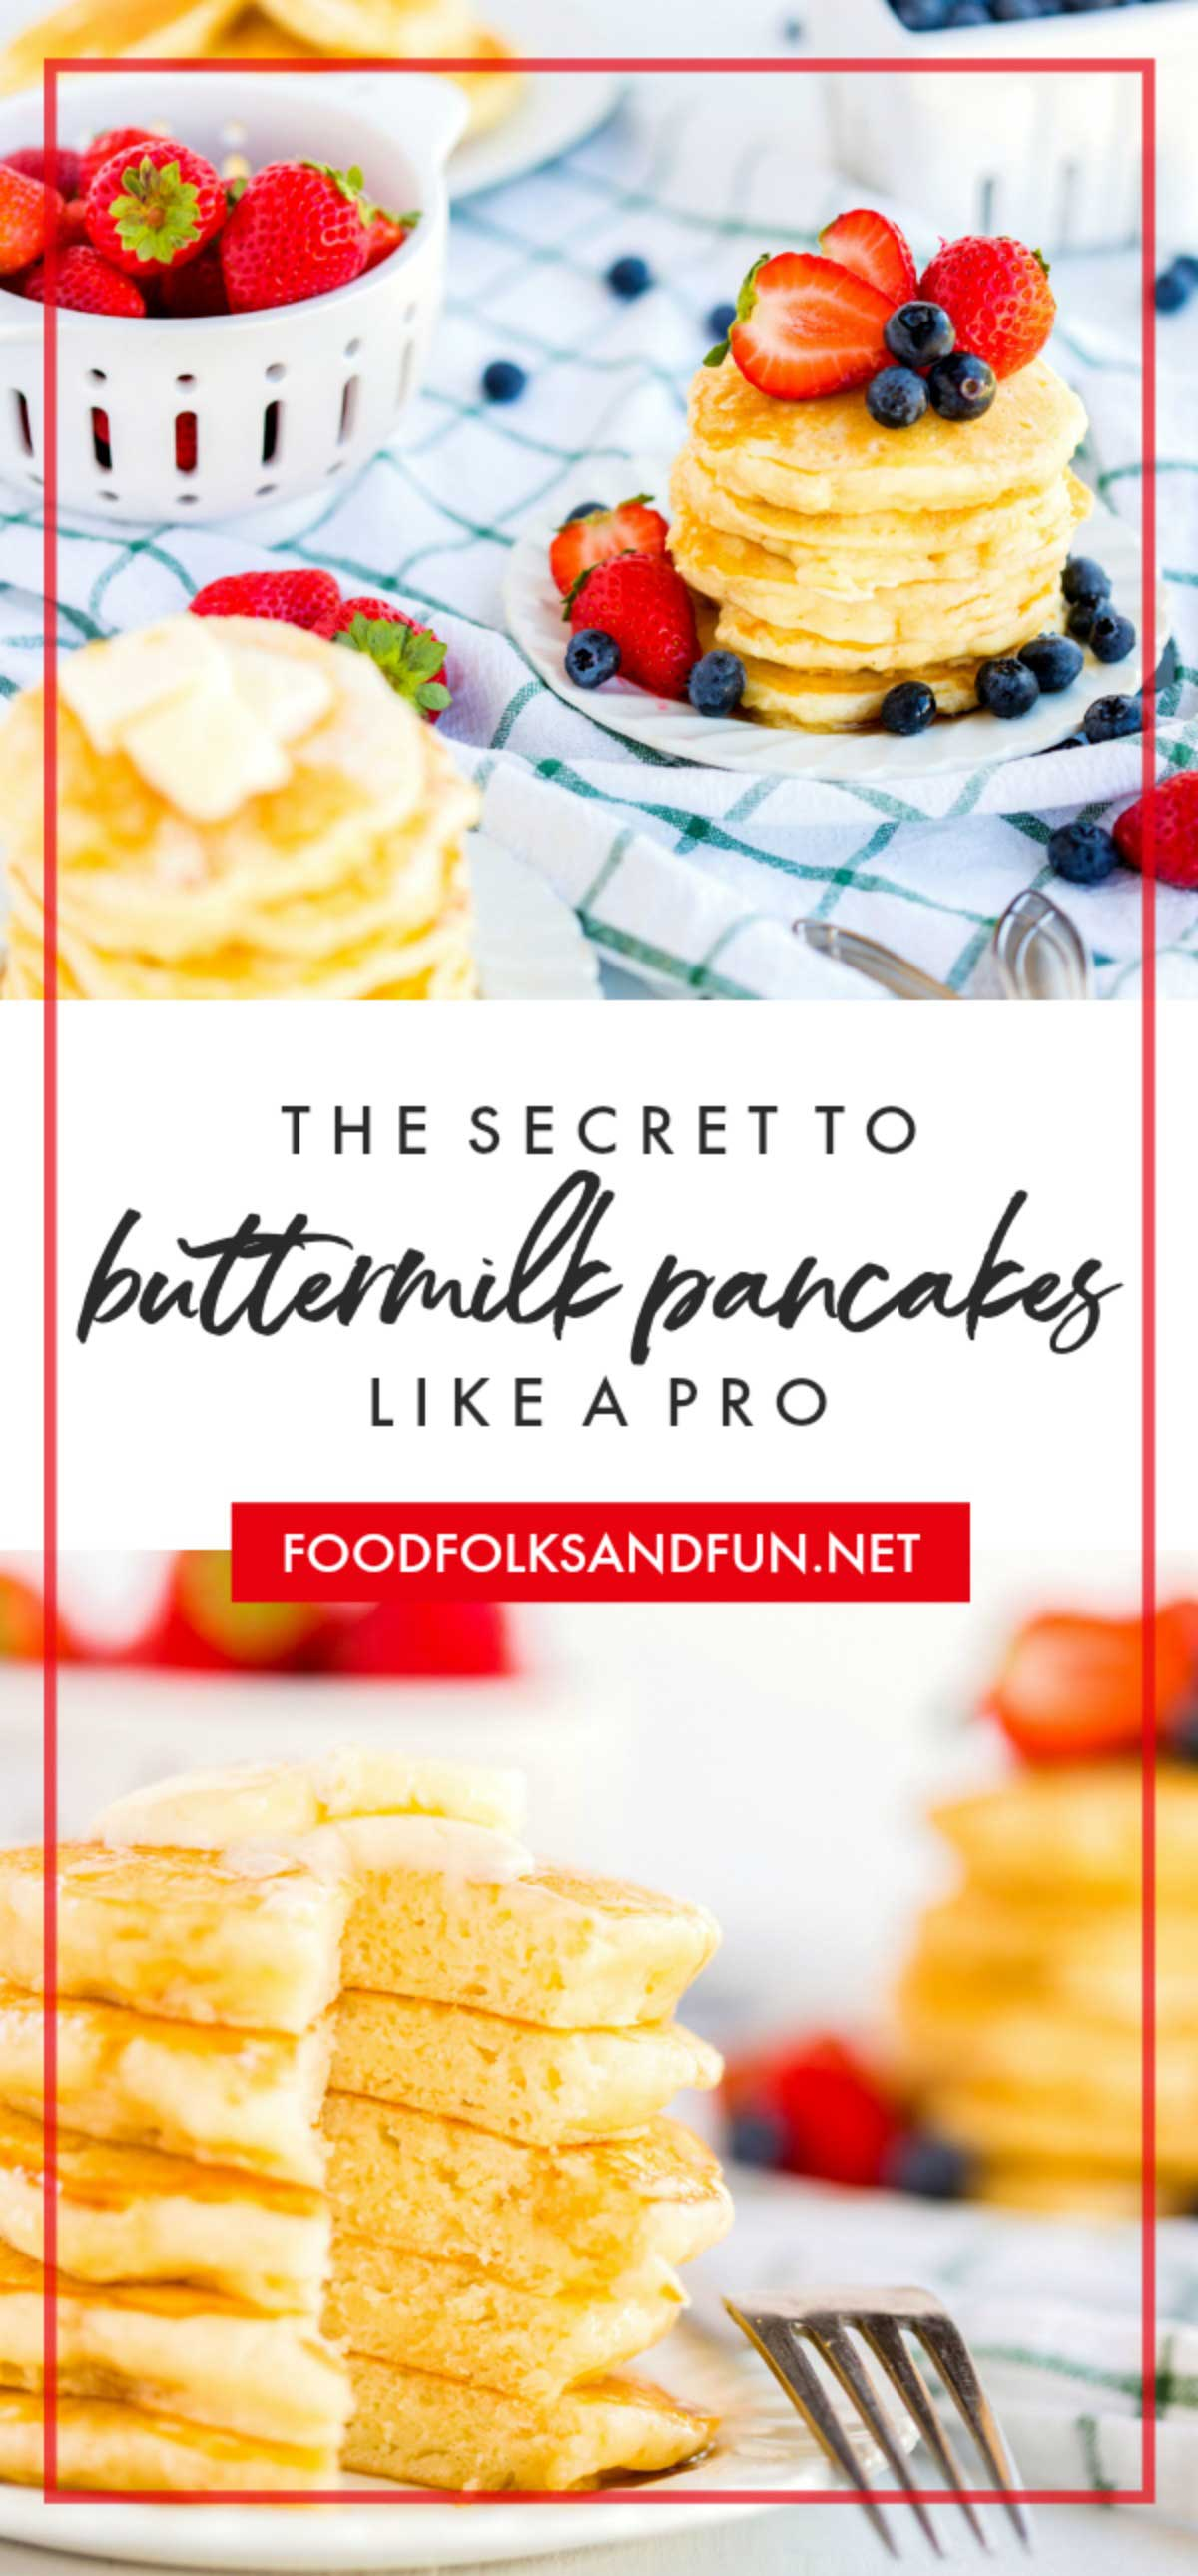 Say goodbye to boxed pancake mix, because these fluffy Buttermilk Pancakes are buttery and have the most amazing melt-in-your-mouth texture. This is simply the best buttermilk pancake recipe and it's so easy to follow! via @foodfolksandfun